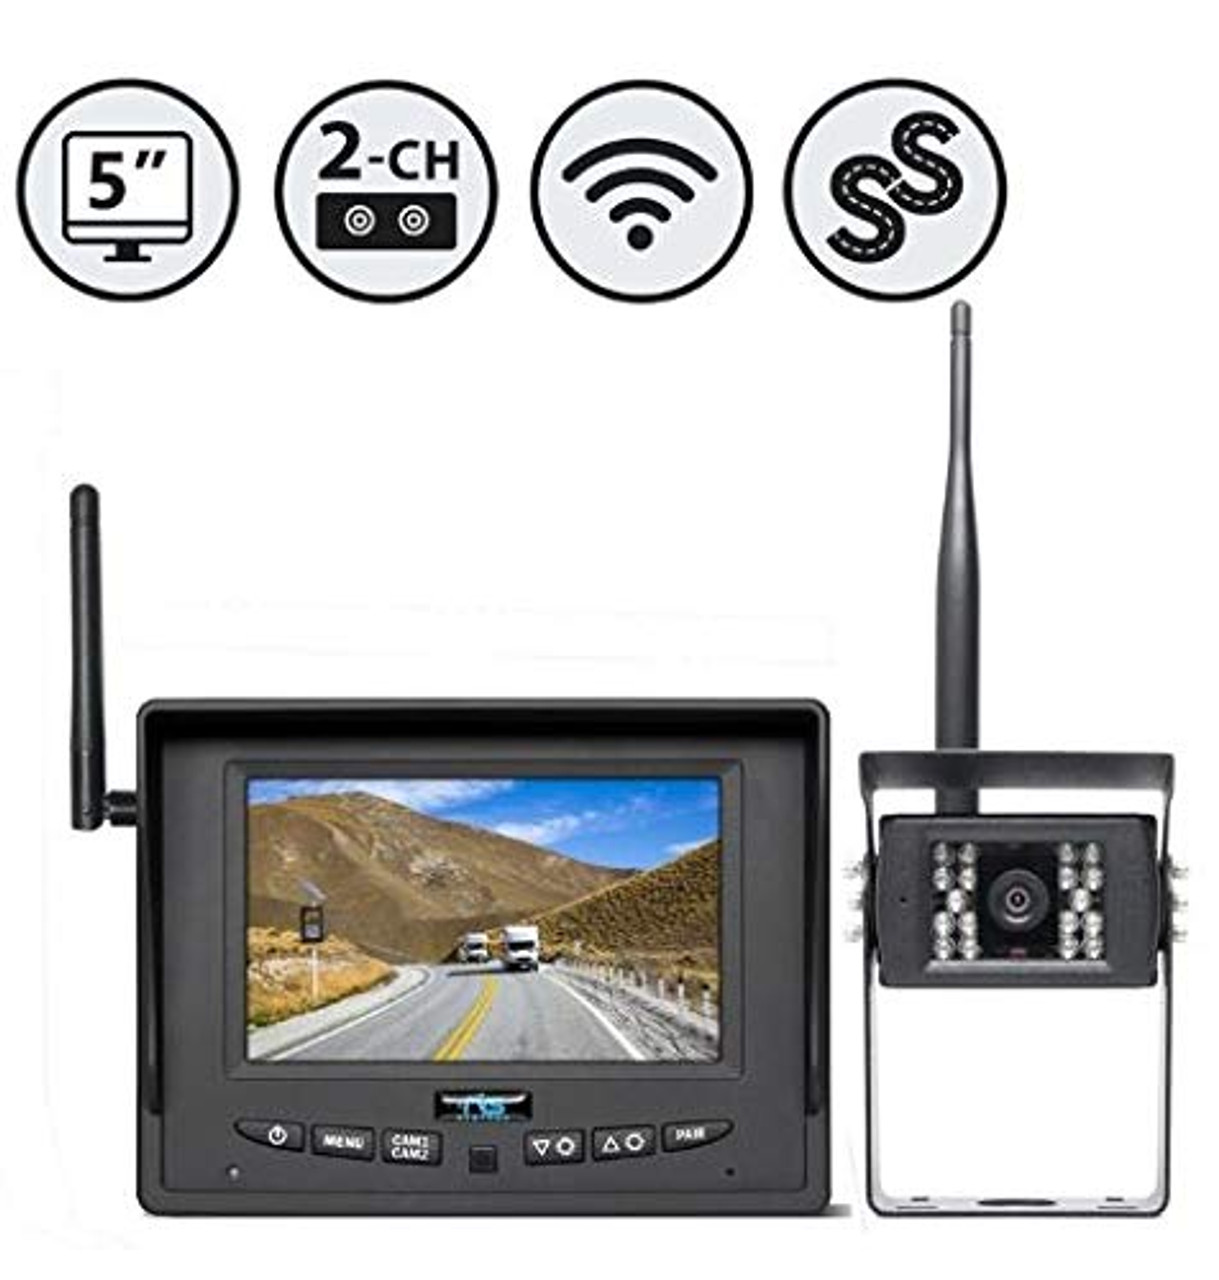 "SIMPLESIGHTTM Wireless Backup Camera System with 5"" Monitor (Dual Channel) (One Backup Camera, Winshield Suction Cup Mount Monitor)"